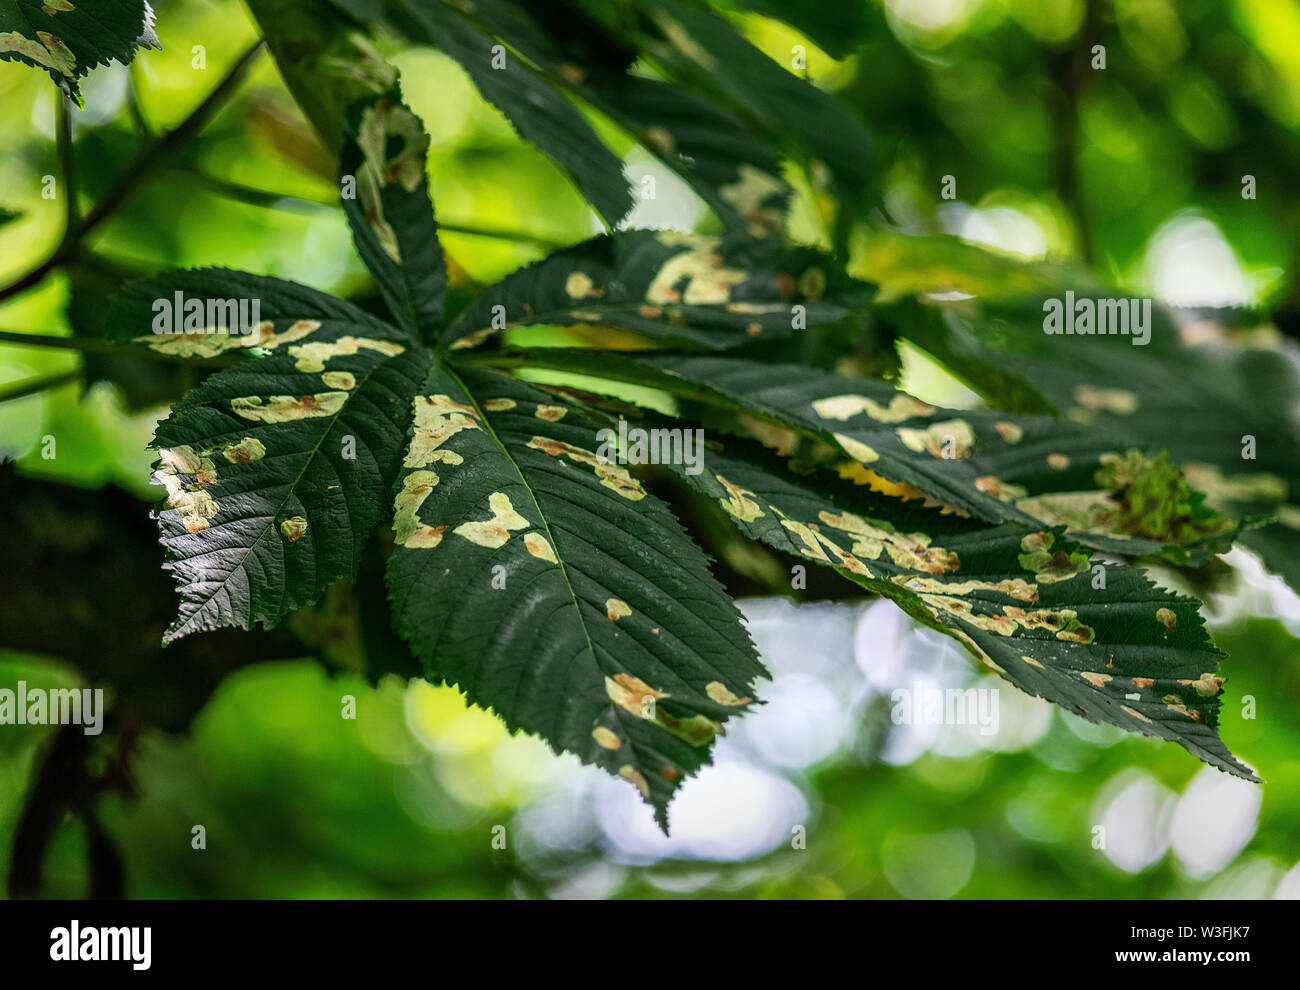 Horse chestnut tree leaves, otherwise known as the conker tree. The leaves are diseased with a fungus which causes blotches to appear. - Stock Image